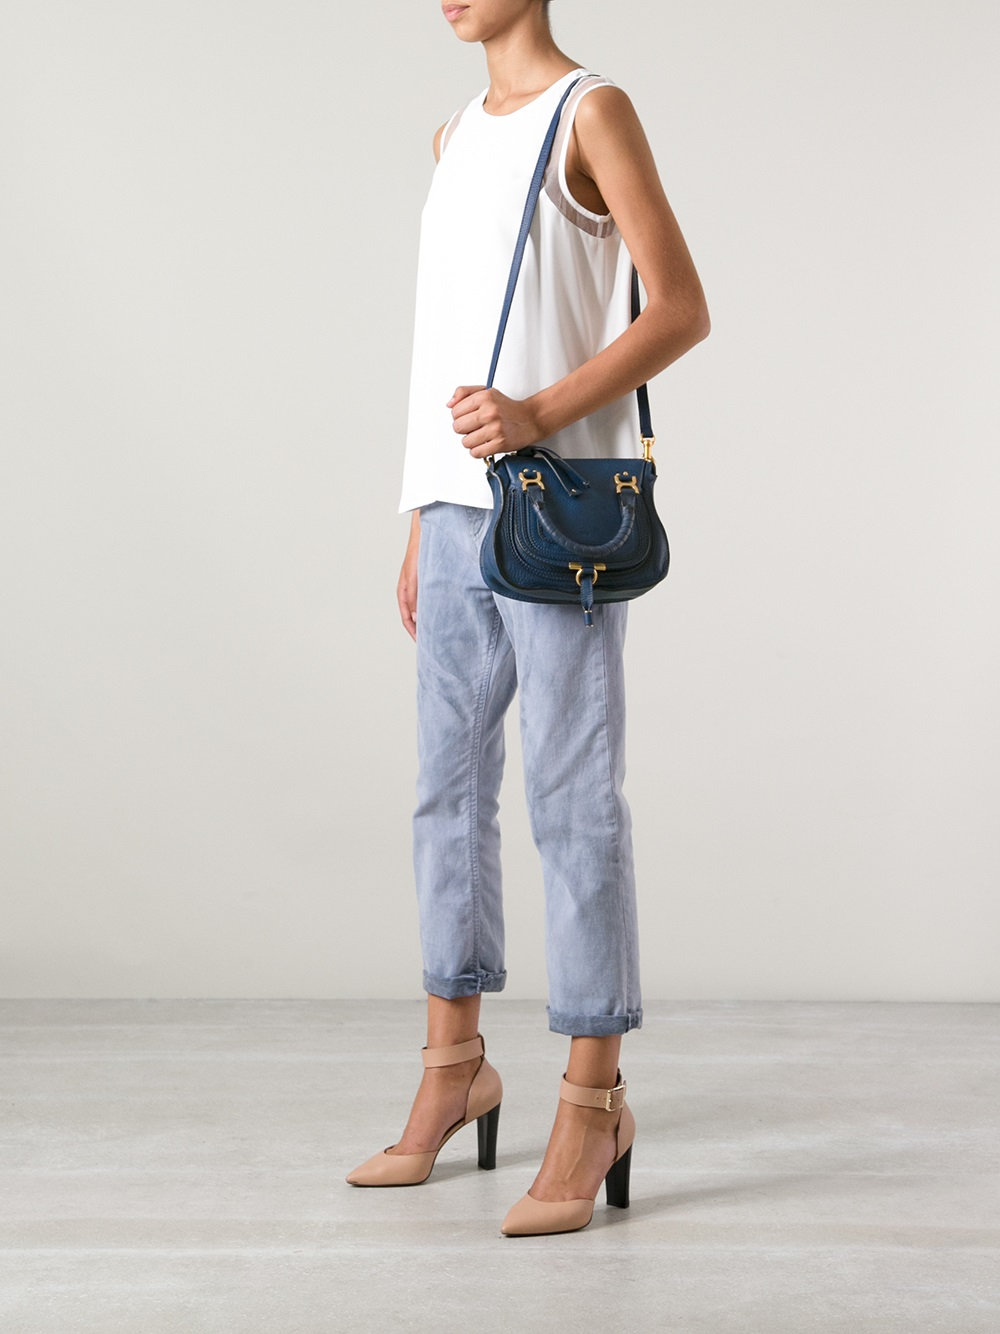 9f6ed898ce4d Lyst - Chloé Marcie Mini Shoulder Bag in Blue